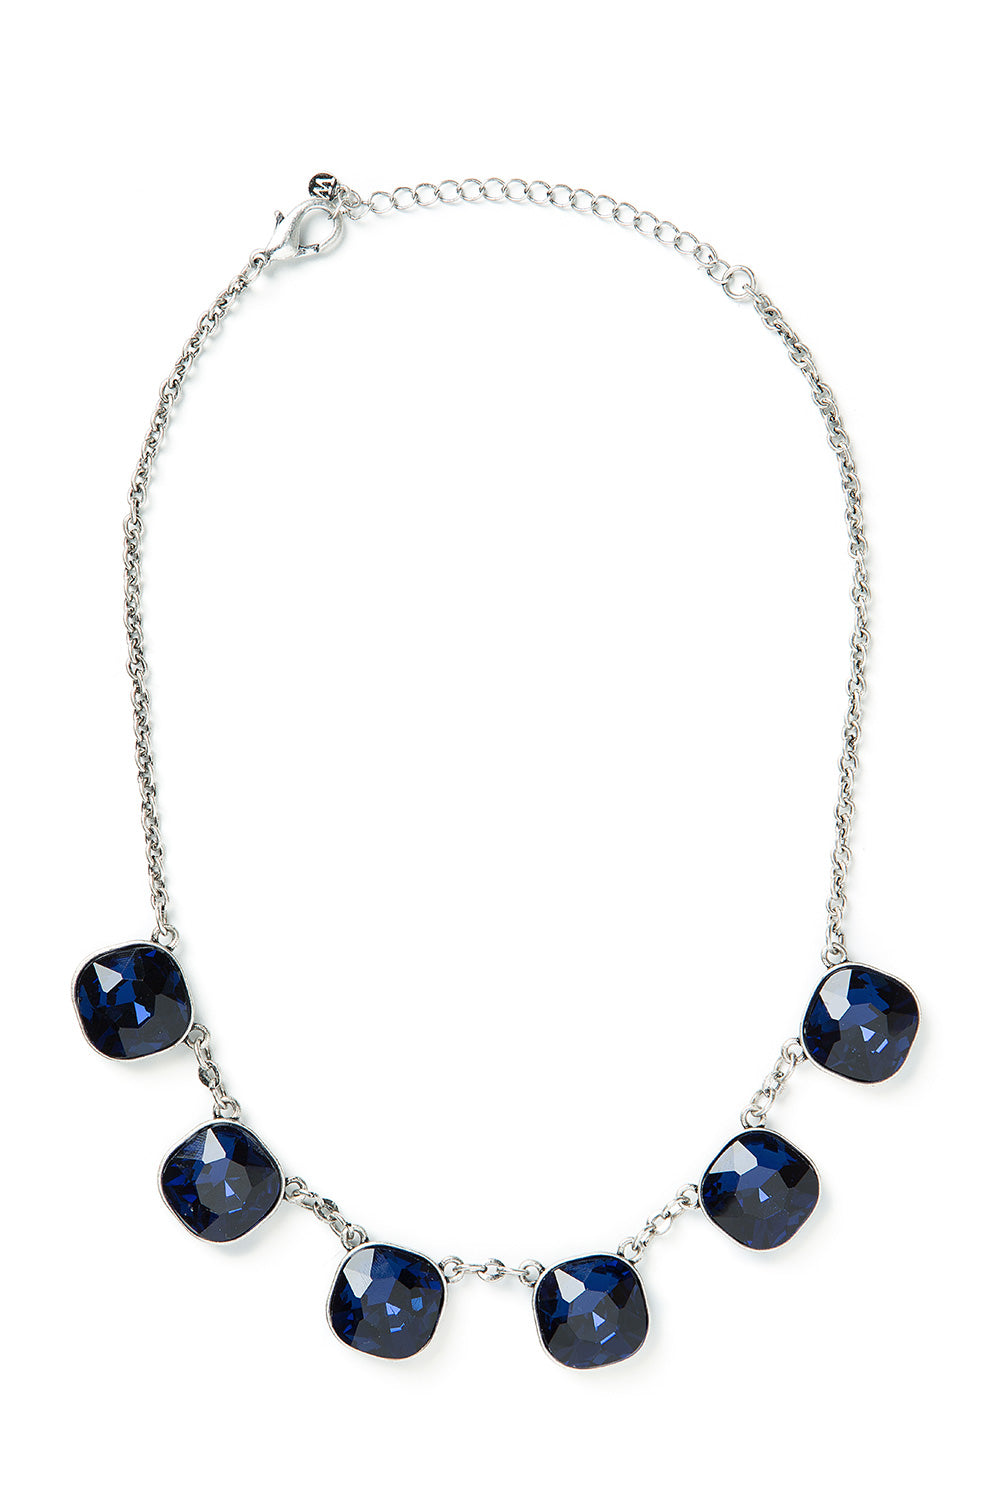 Type 4 Blue Rubies Necklace